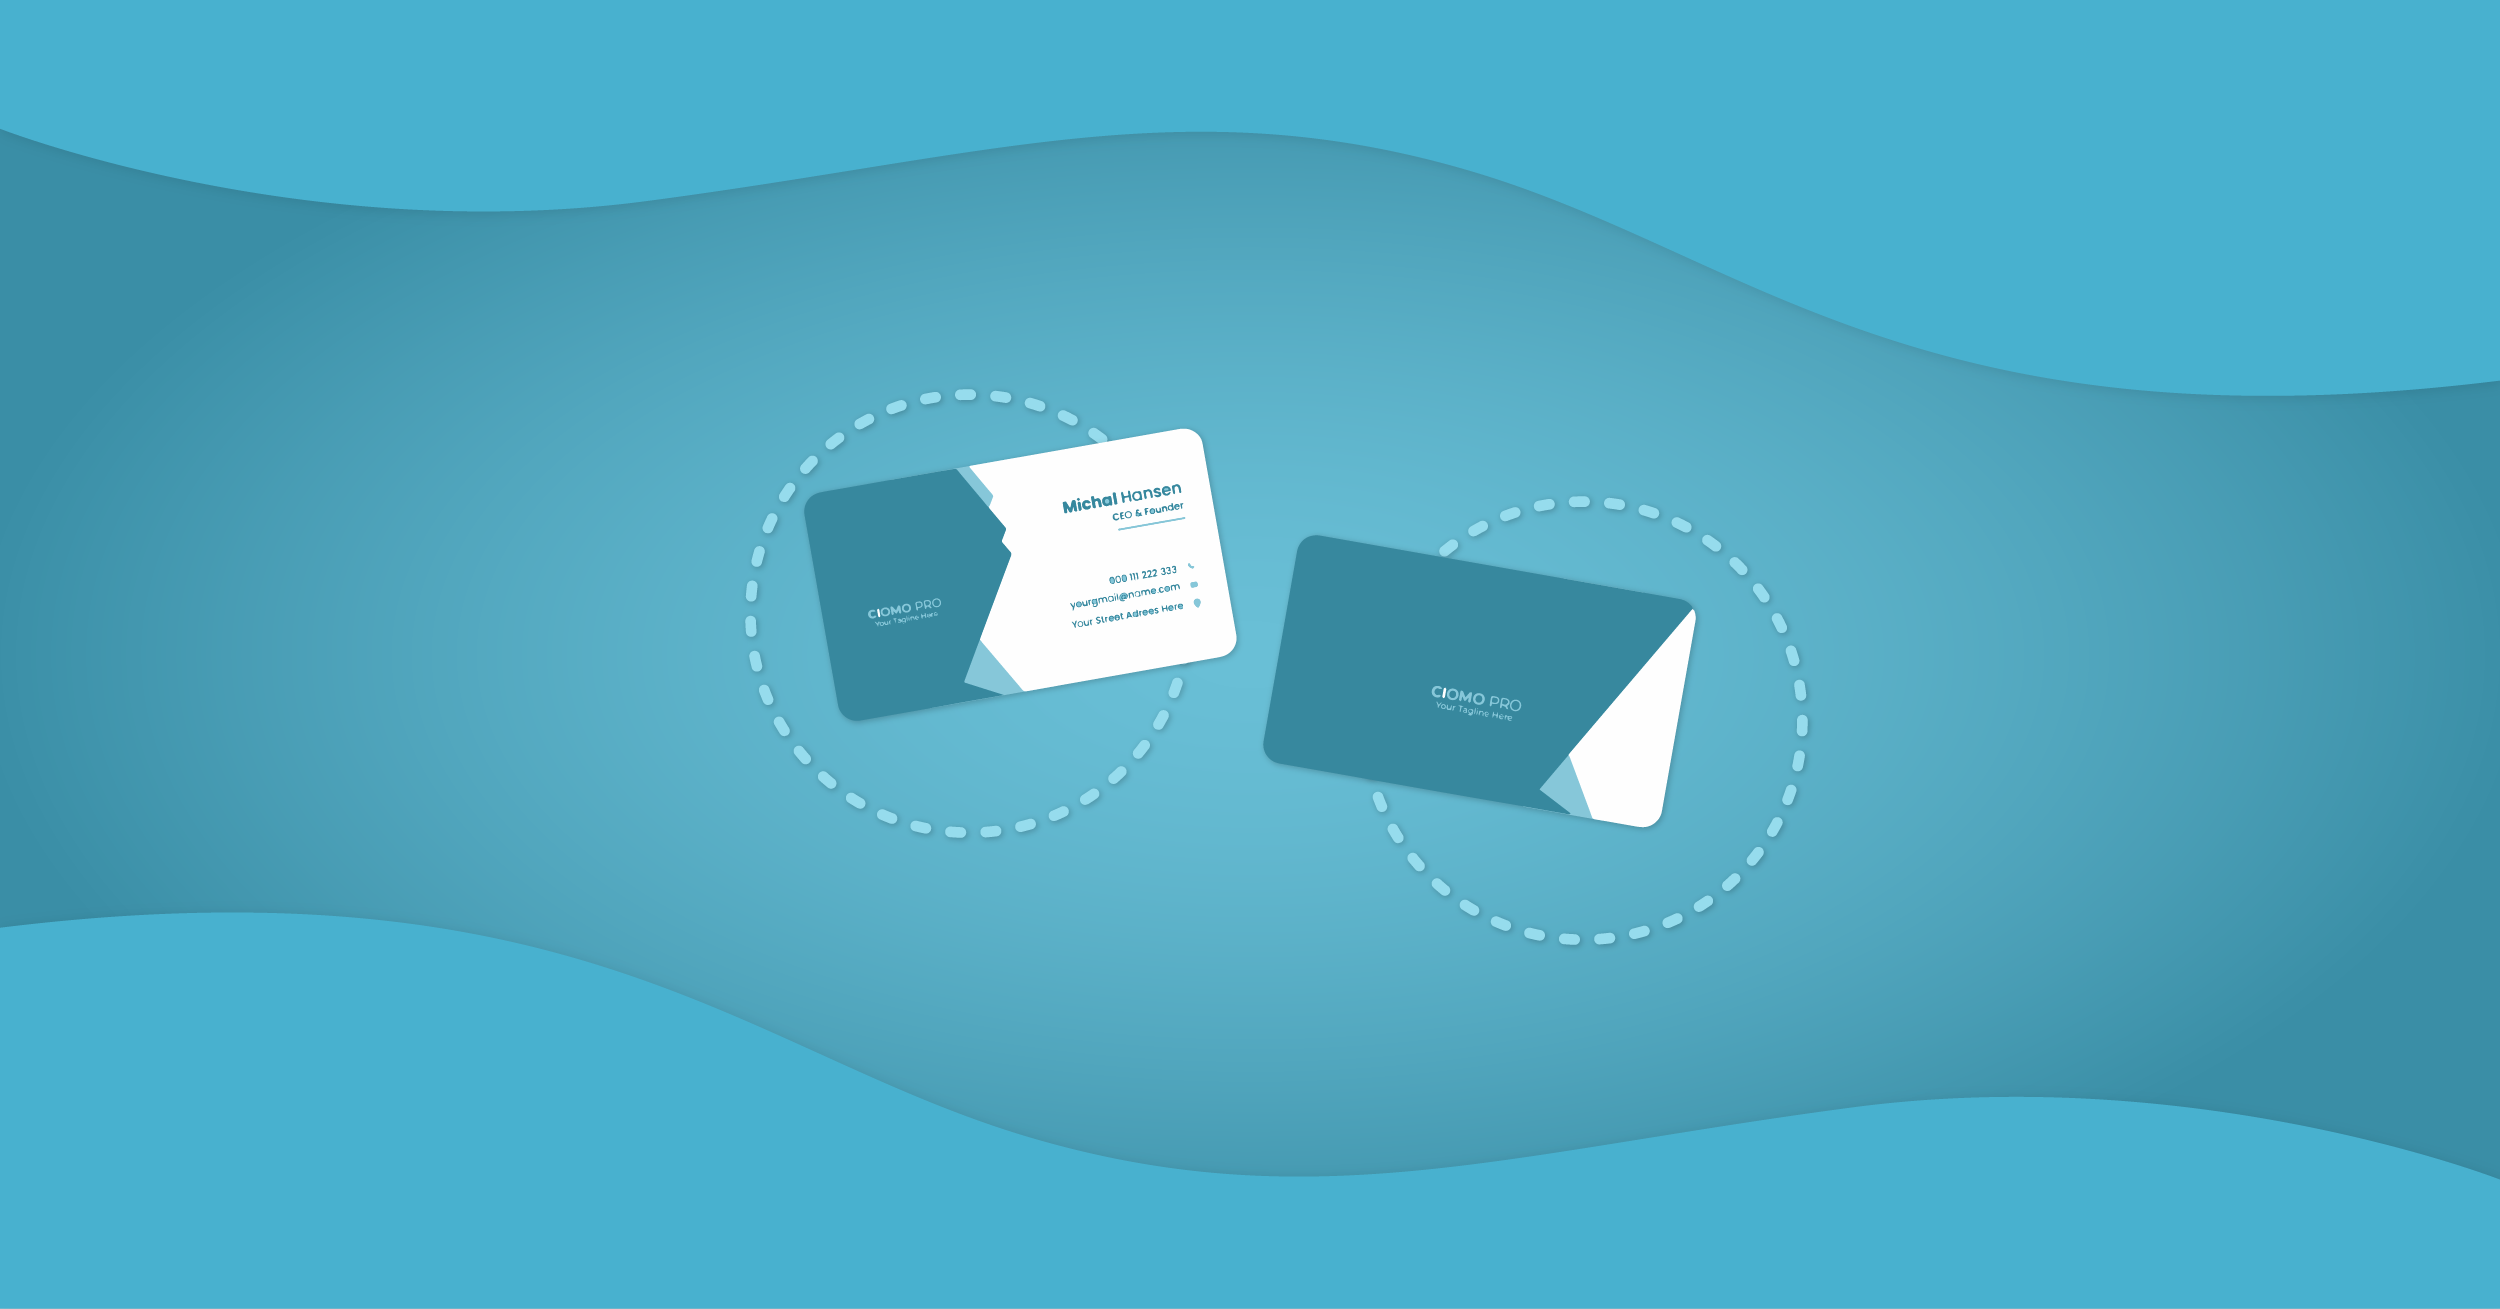 7 Secrets For Effective Business Card Design Revealed